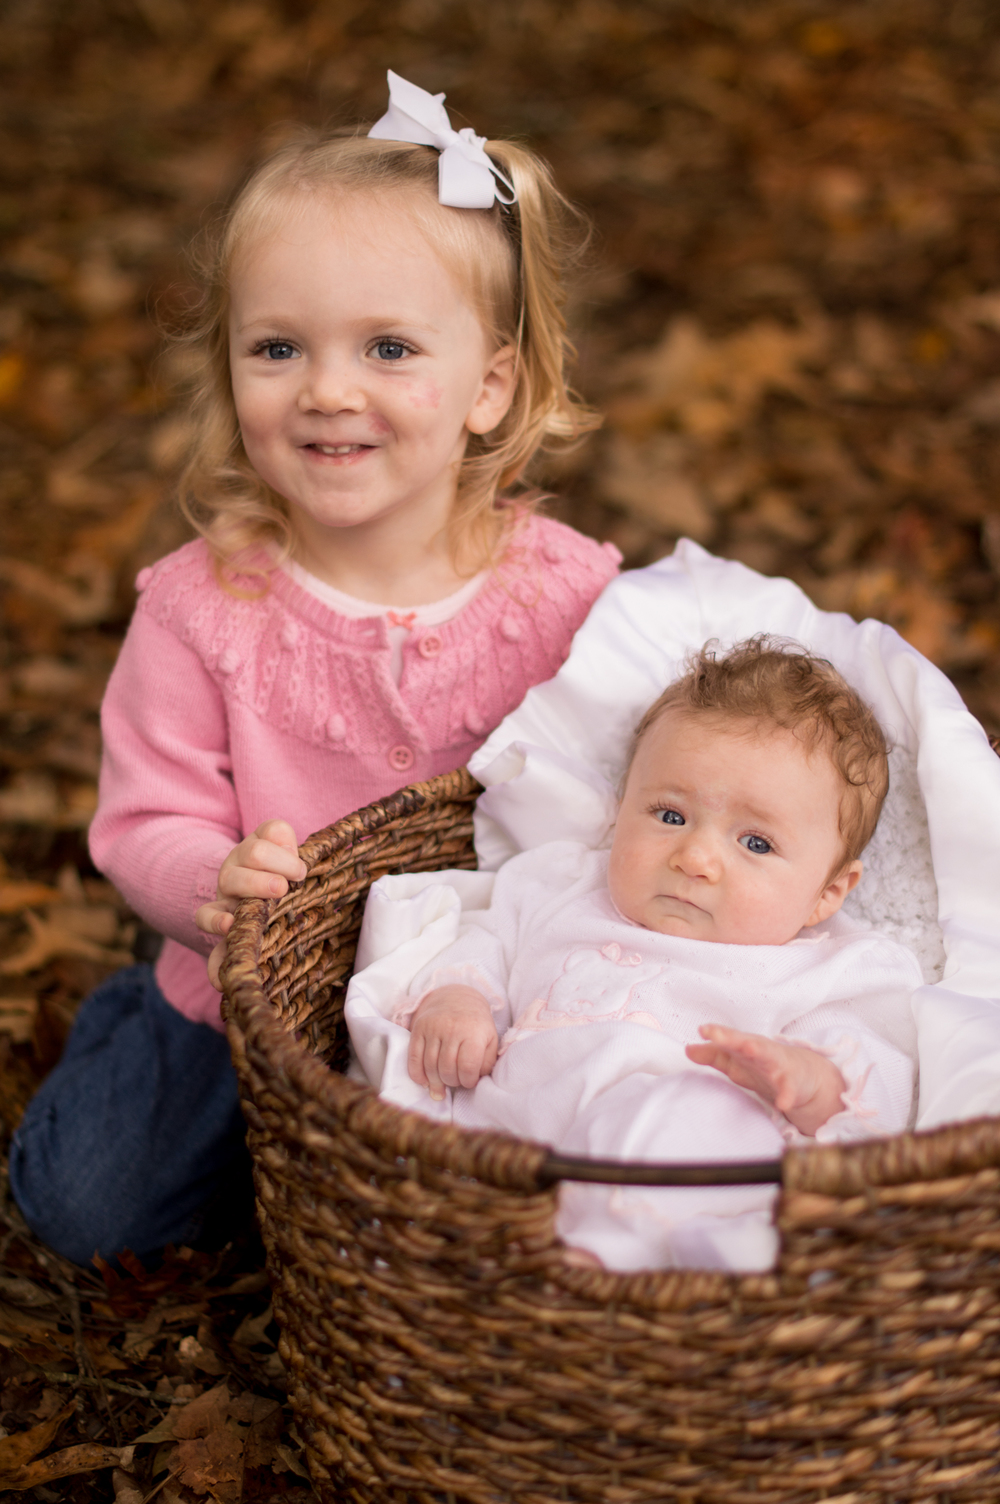 Children photography in Kingston, GA